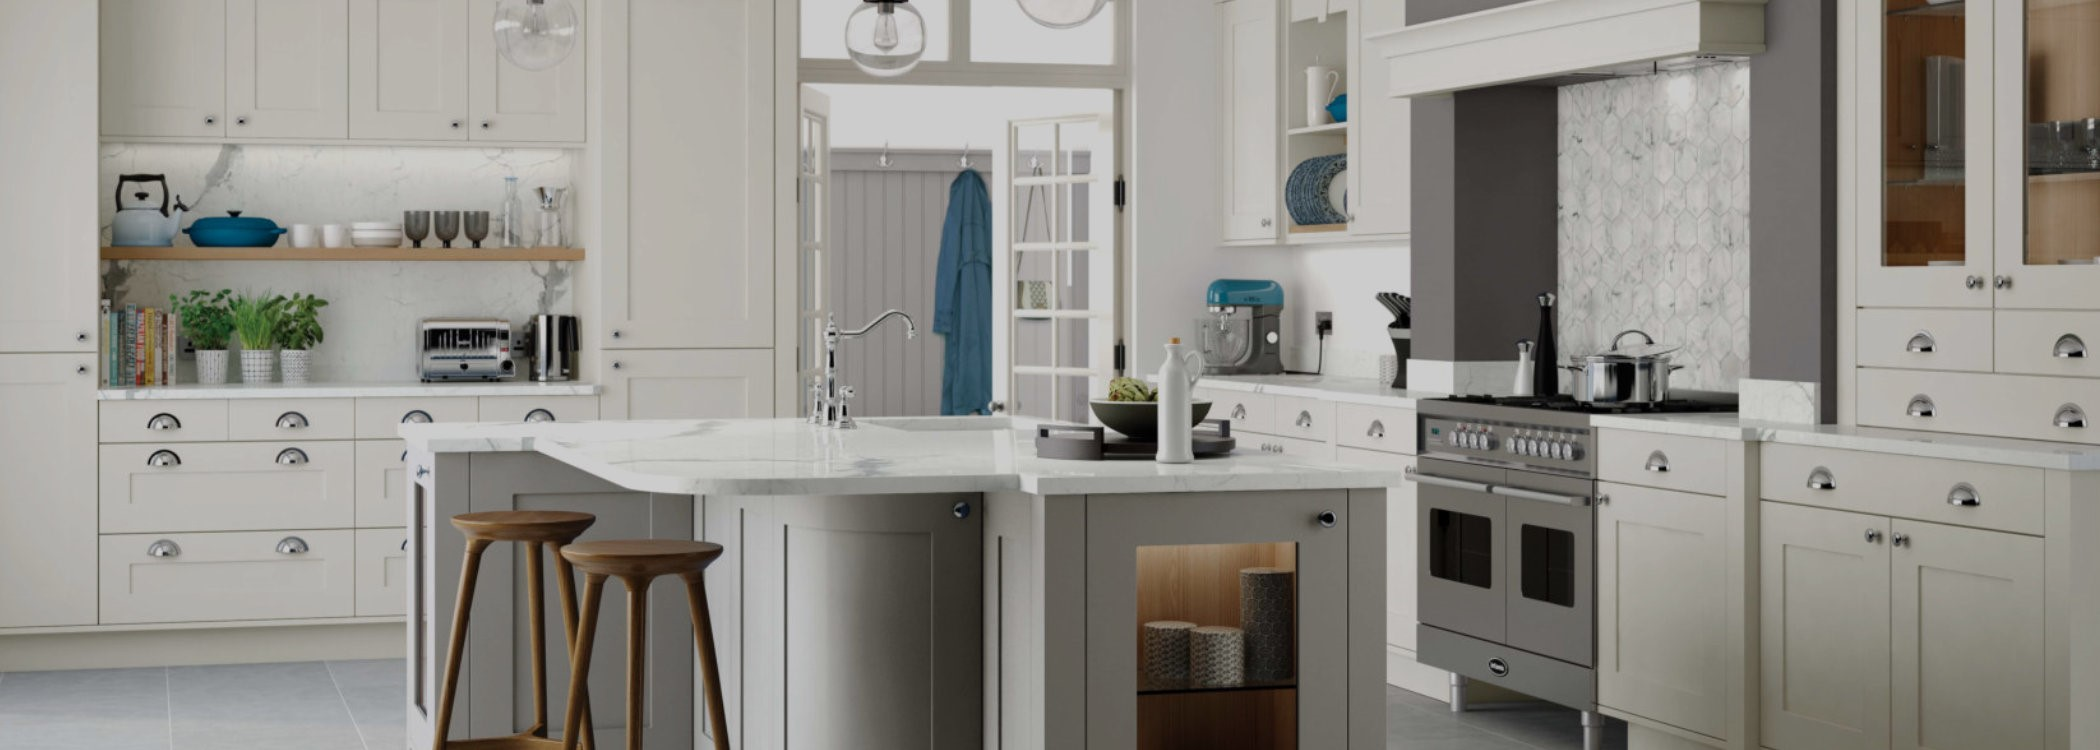 Quantum Origin Keele Kitchens